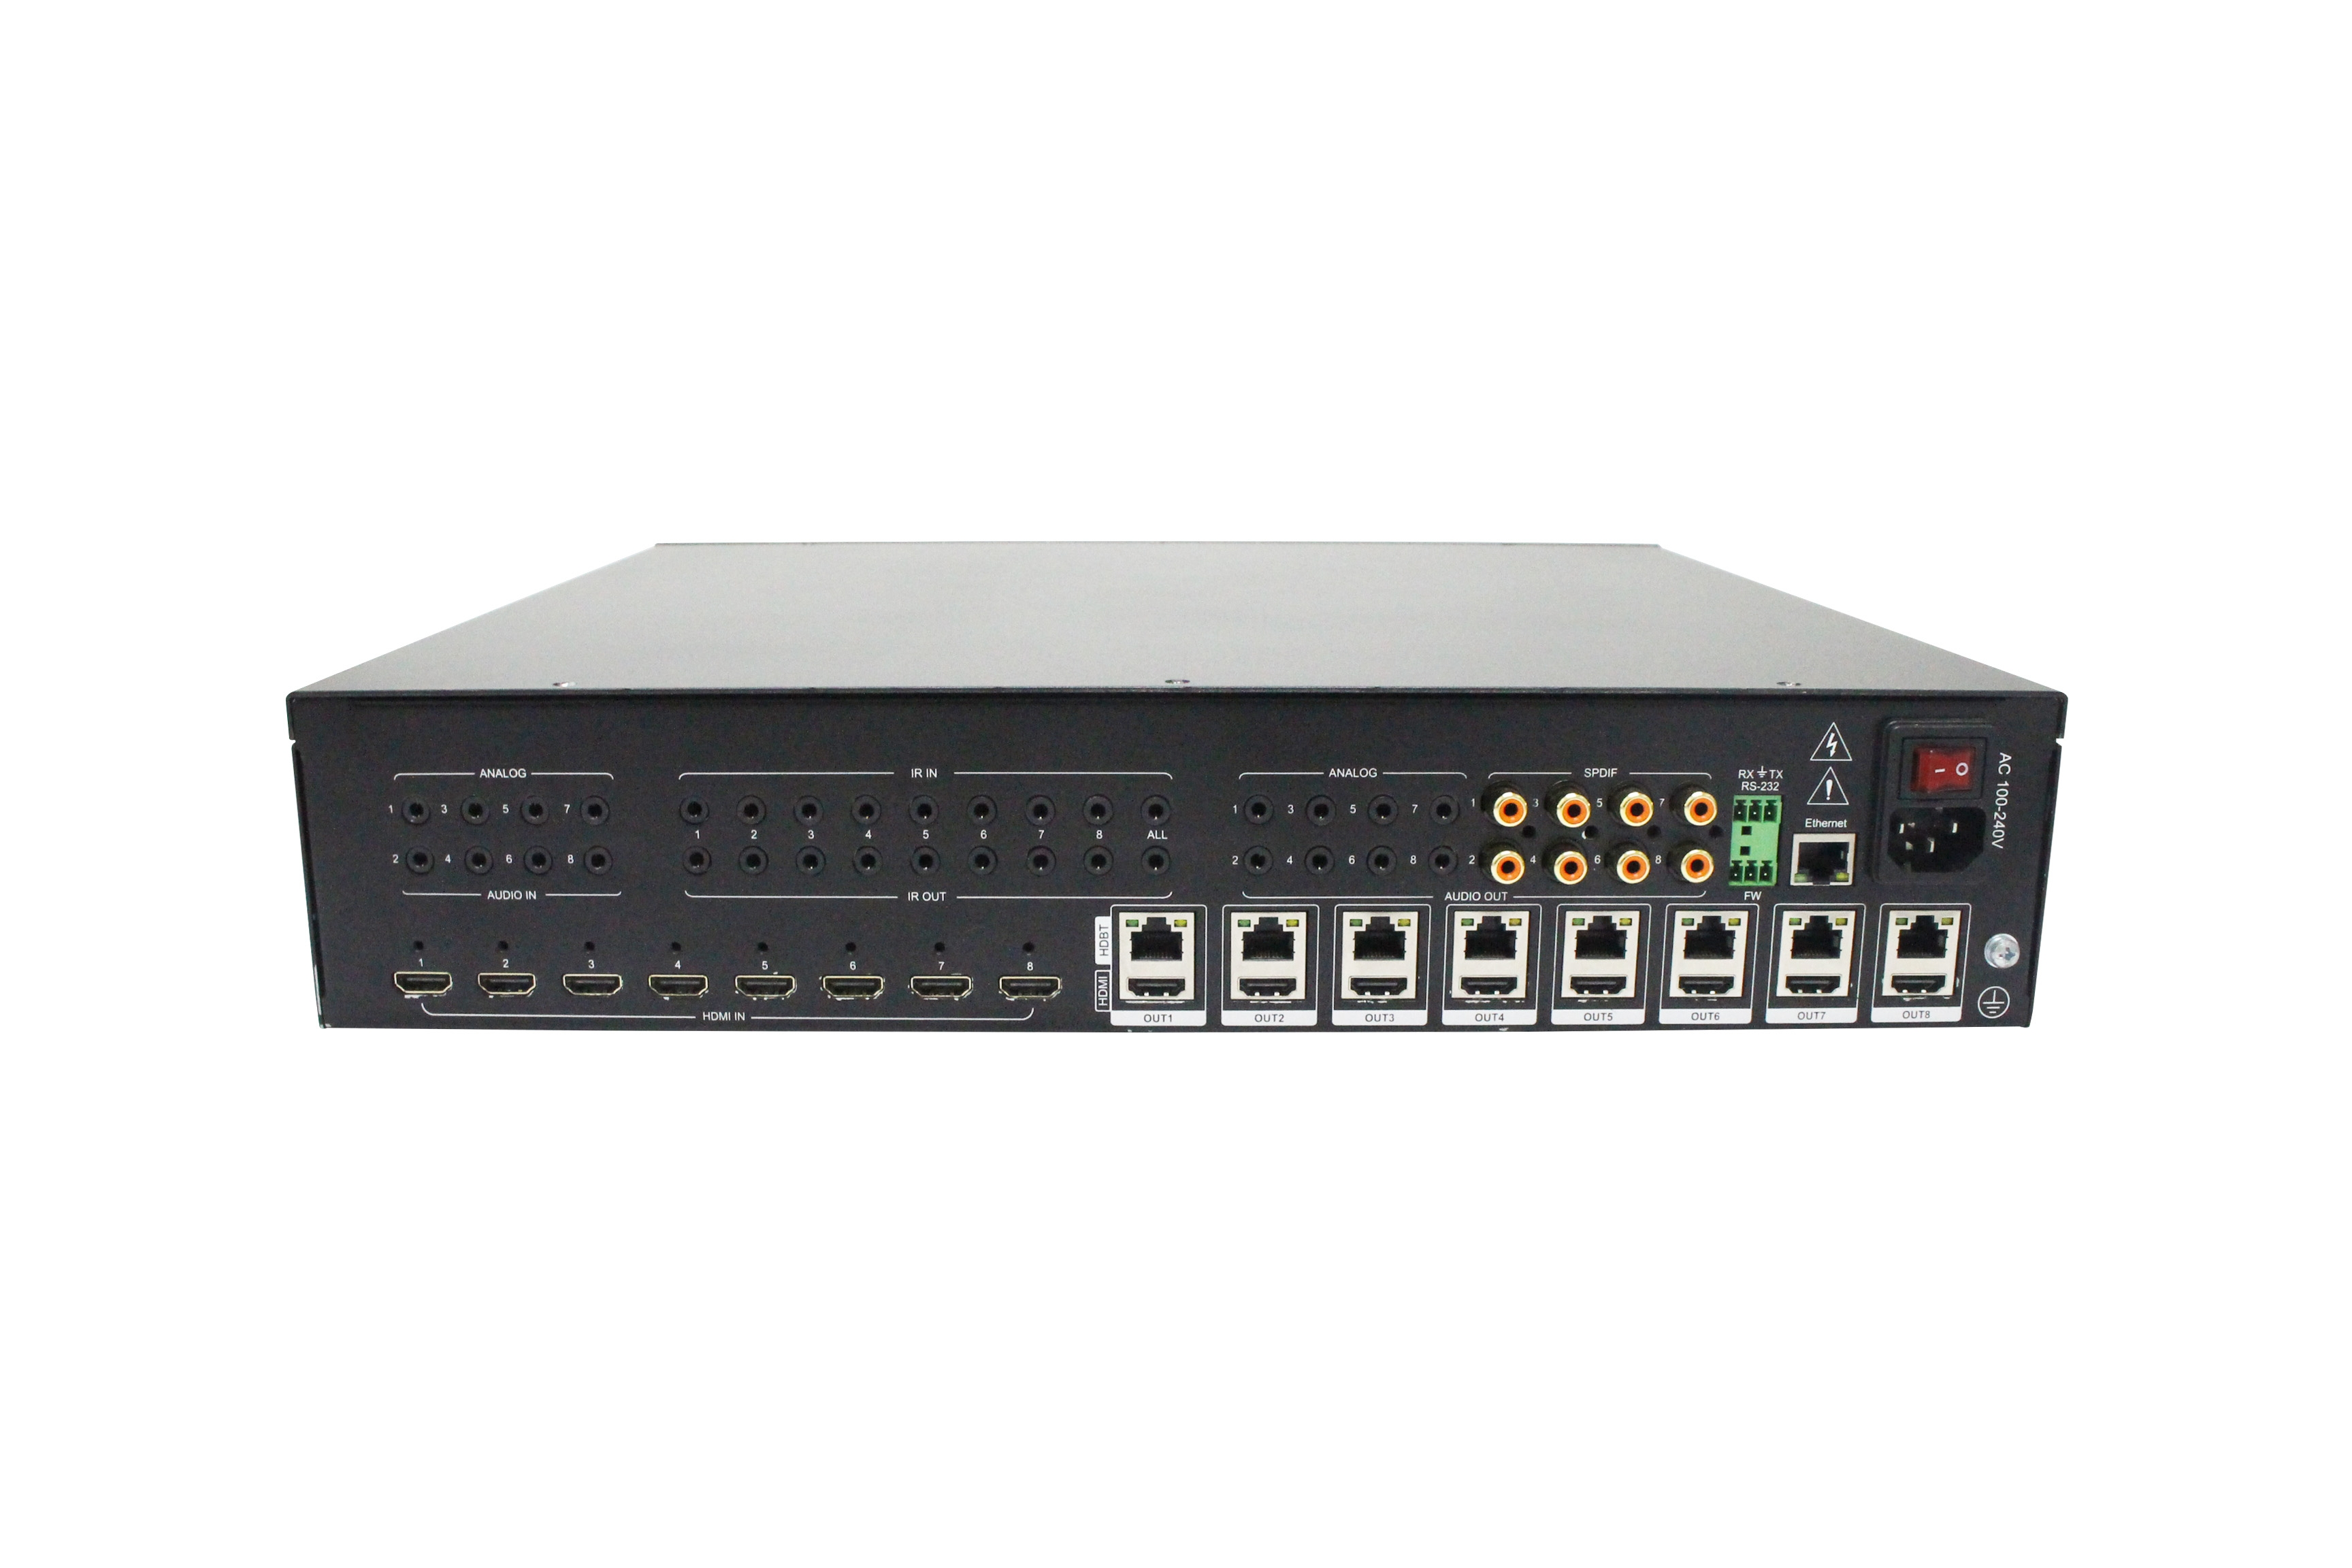 70m 8x8 HDBaseT Matrix, Support 18G, HDR, 4K2K@60Hz, YUV 4:4:4